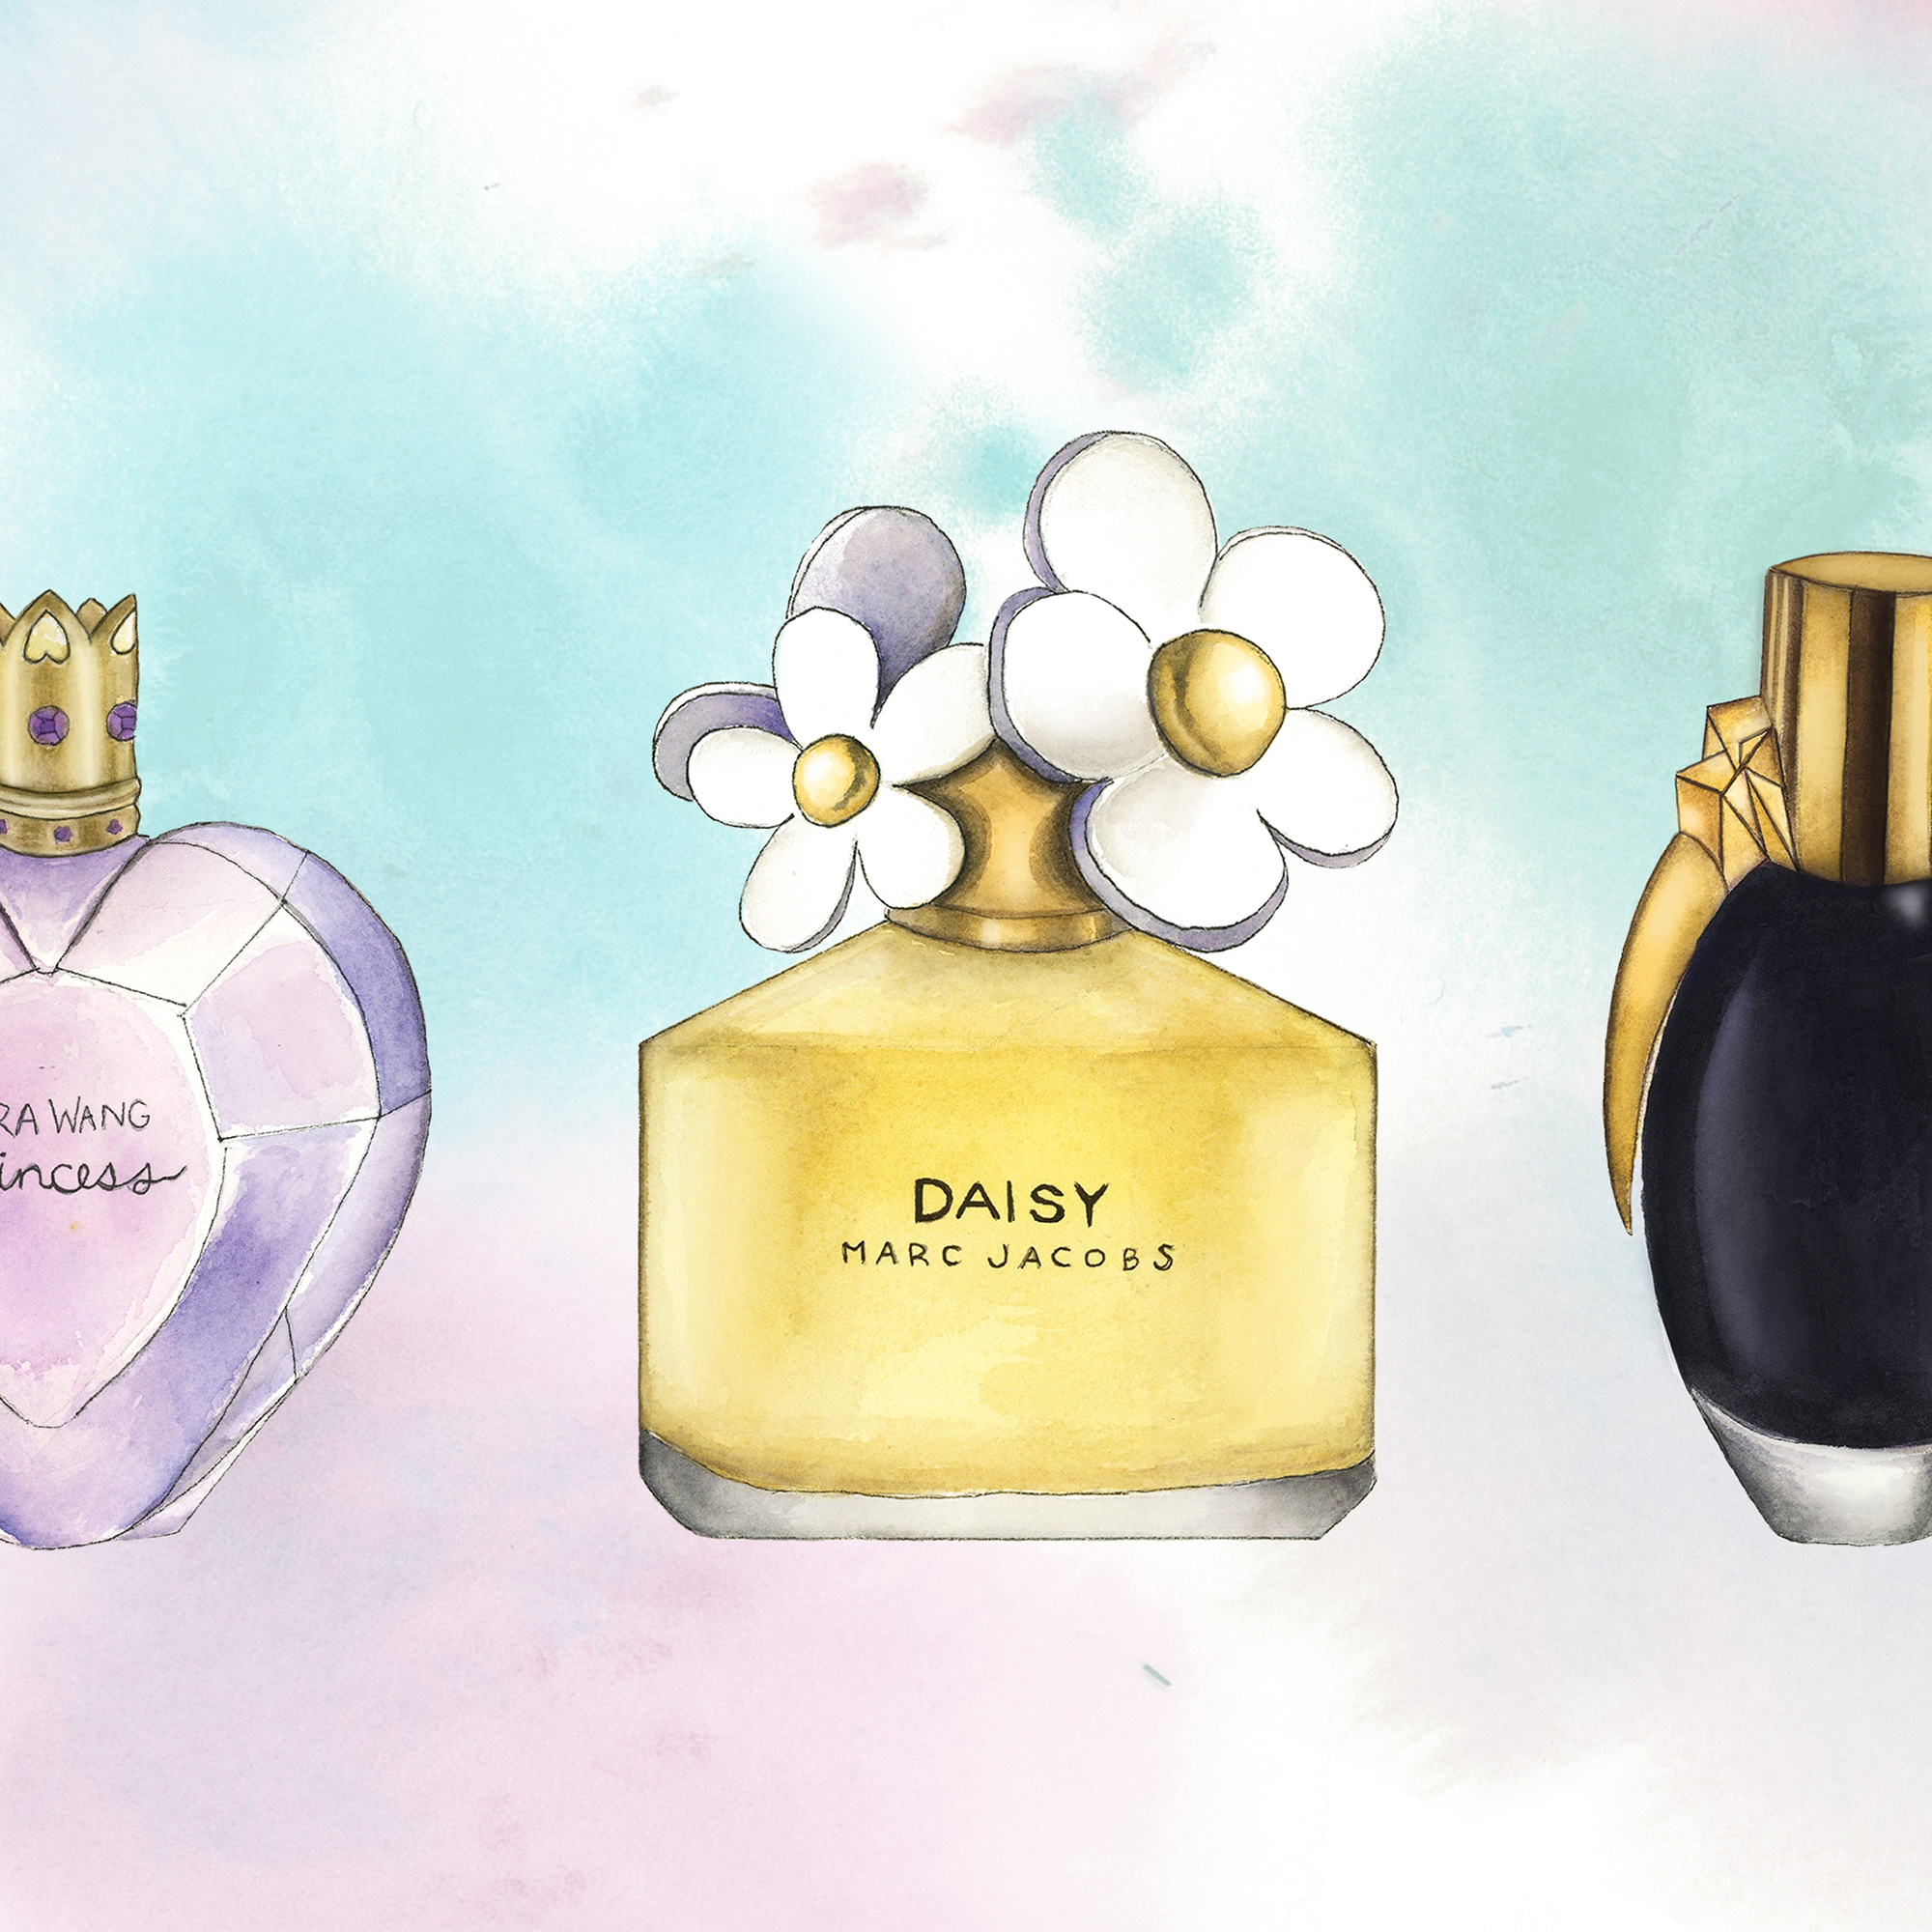 Perfumes: Spot Illustrations of fragrances. Watercolor, Ink, and digital media.